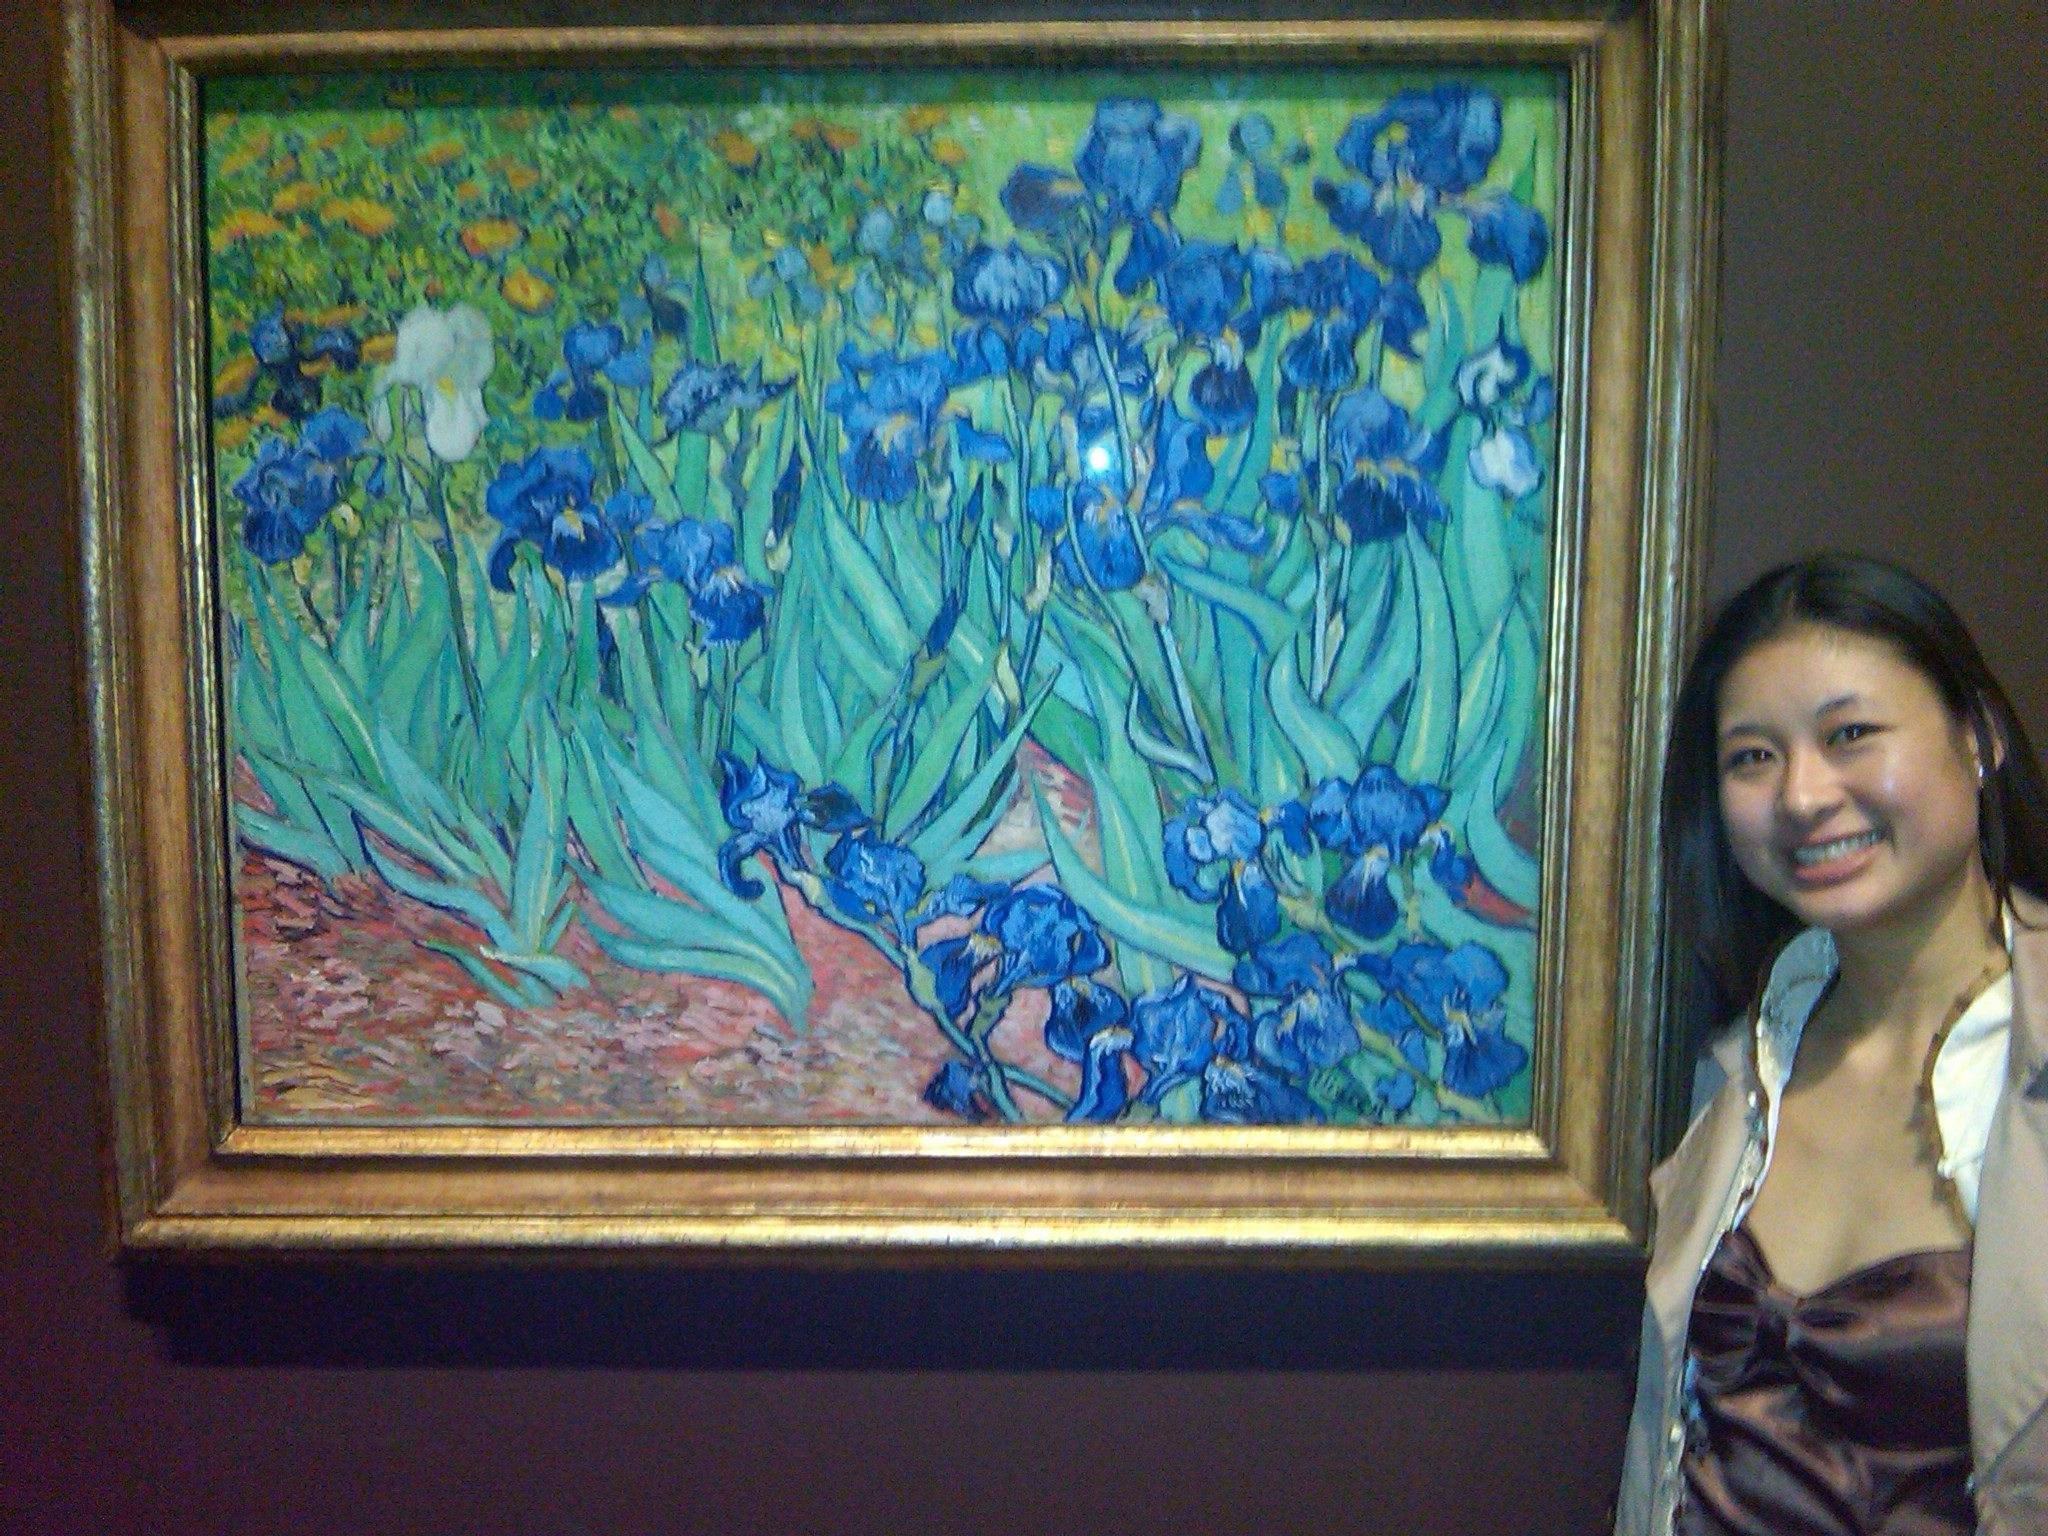 Van Gogh at the Getty